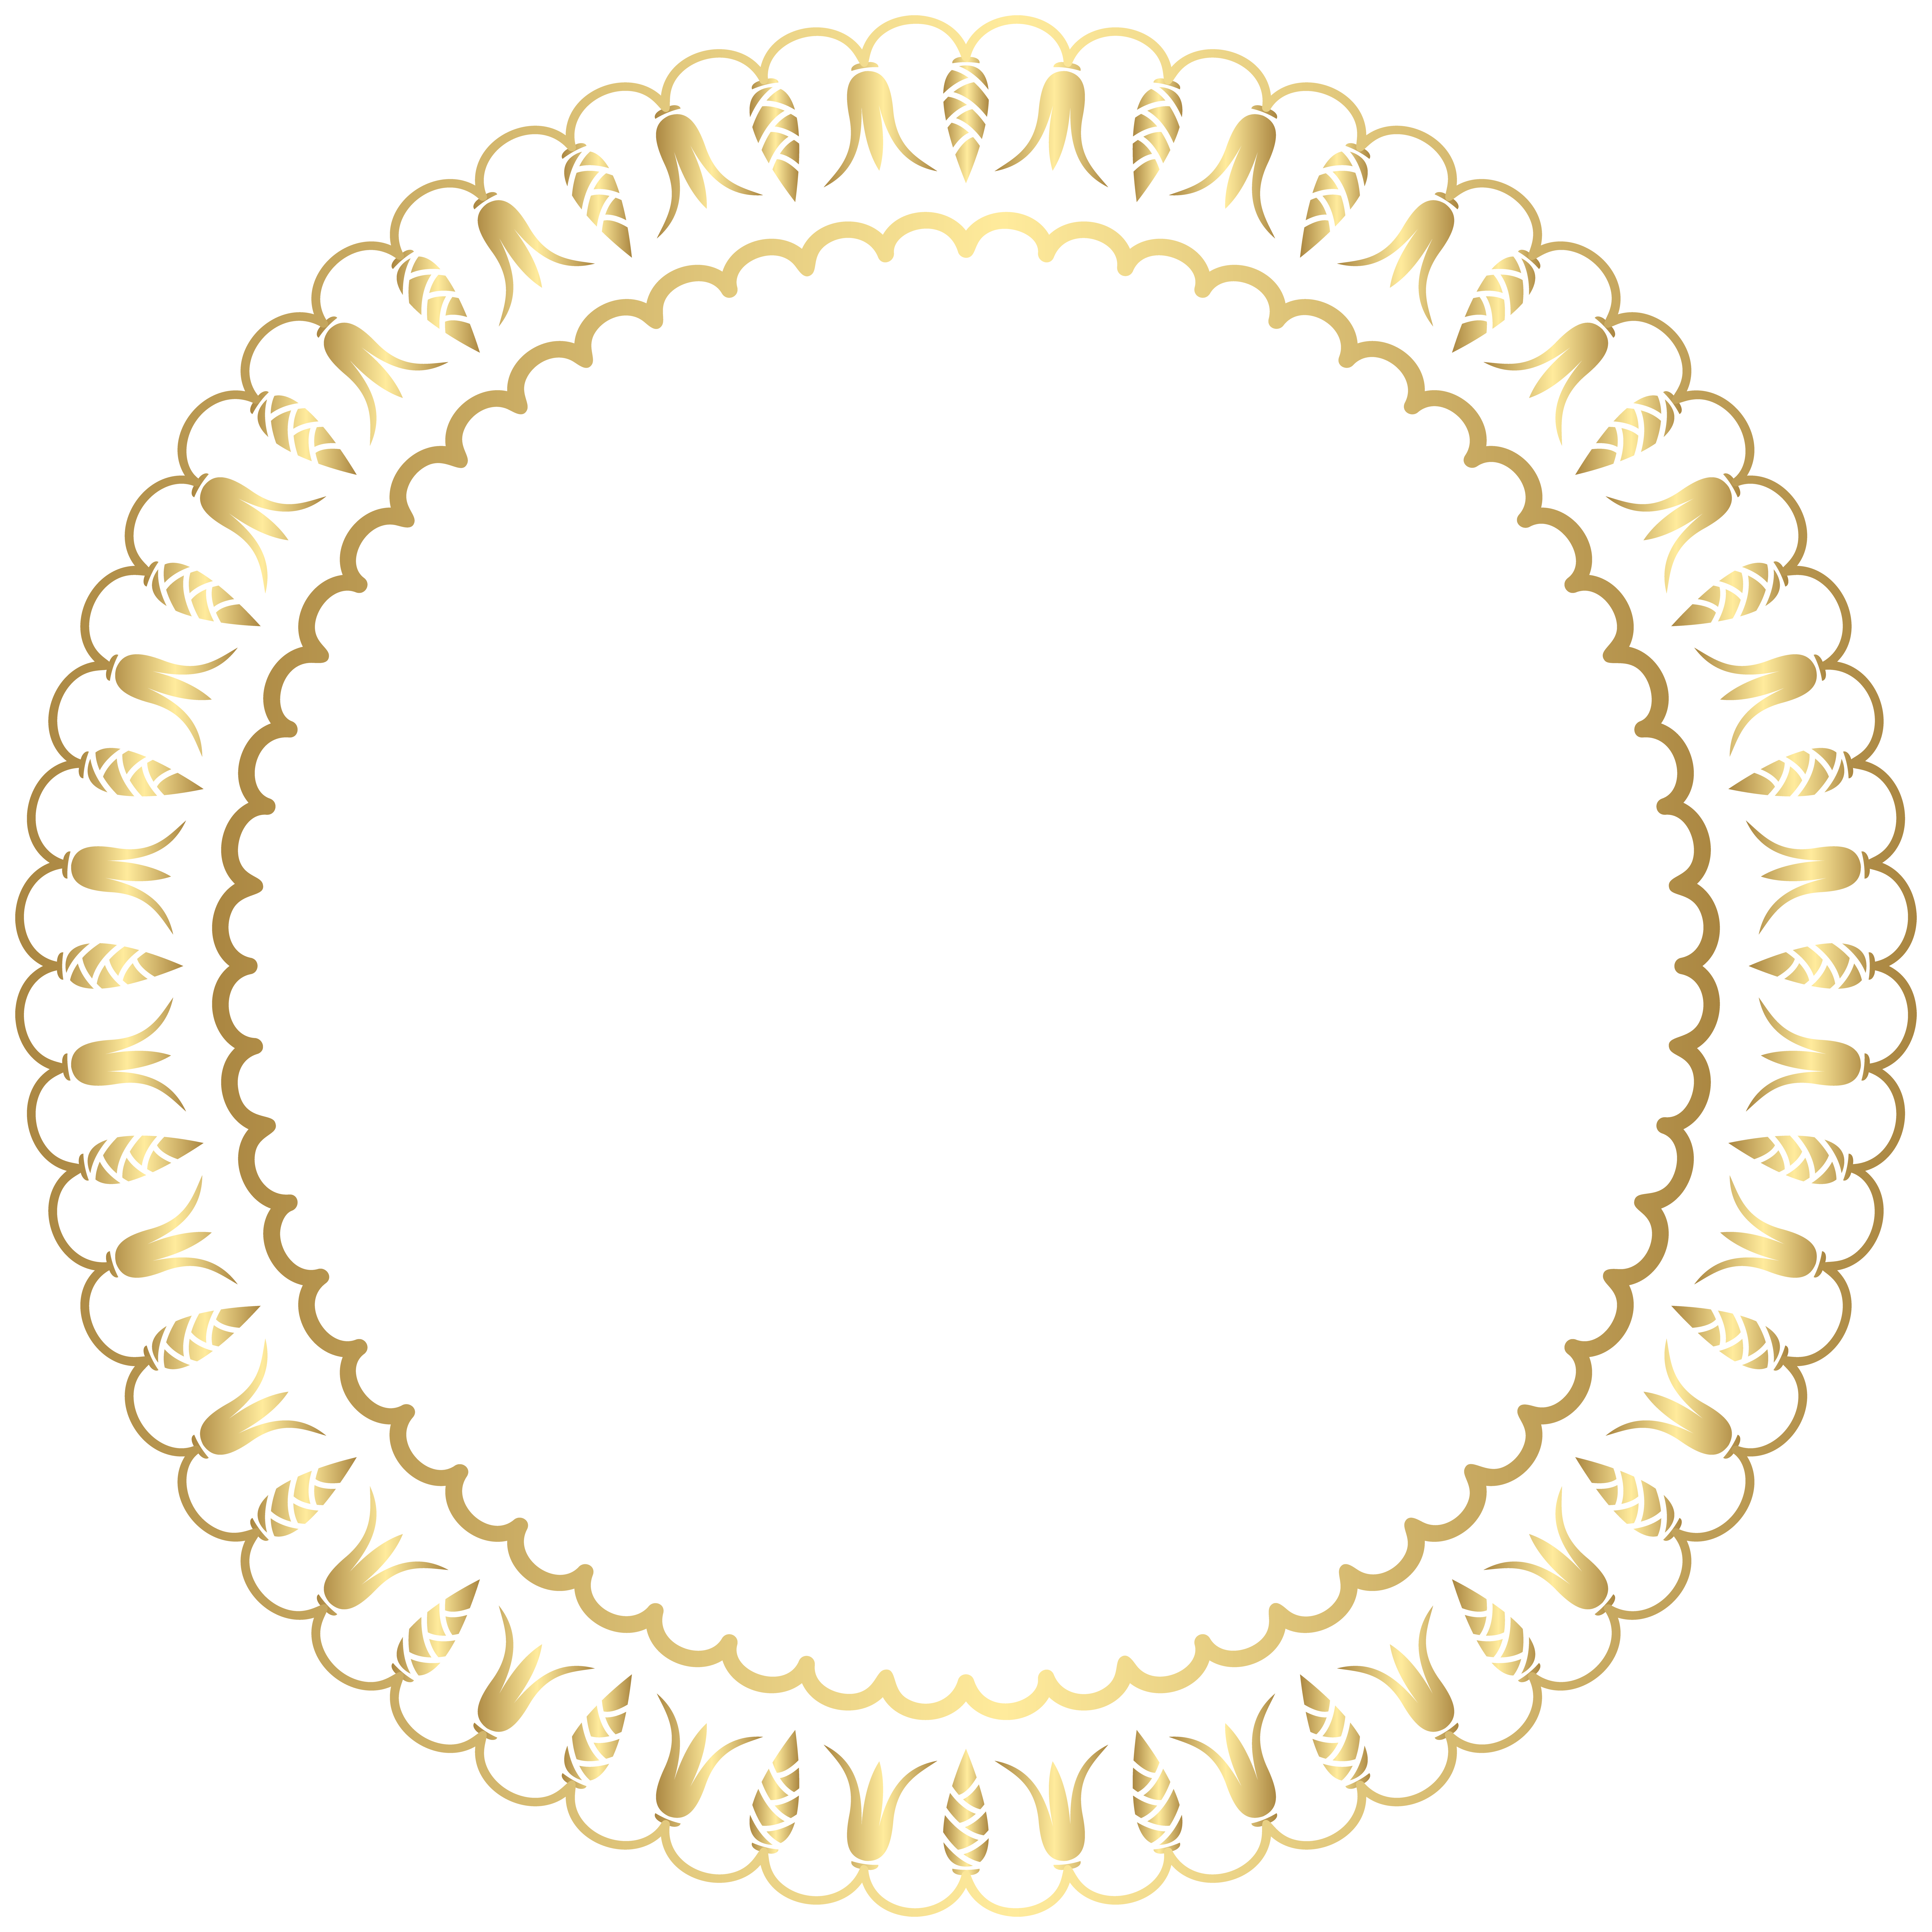 Decorative Round Border Frame Png Clip Art Gallery Yopriceville High Quality Images And Transparent Png Free Clip Ilustracao De Bolos Quadros Rosa Vetores